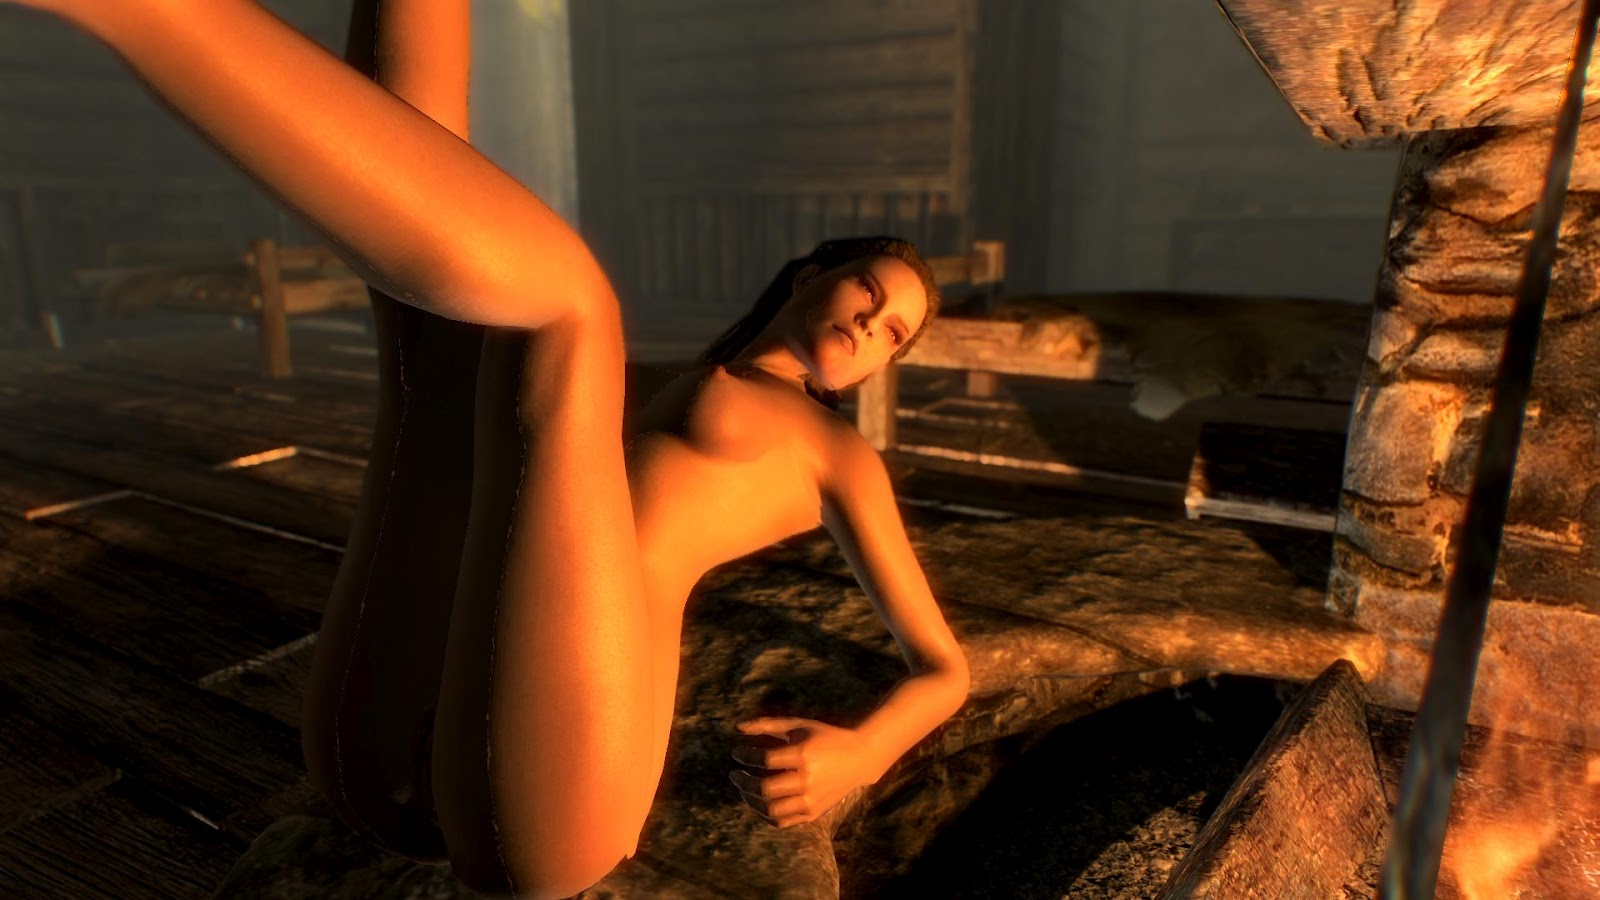 Naked skyrim women pics pornos videos